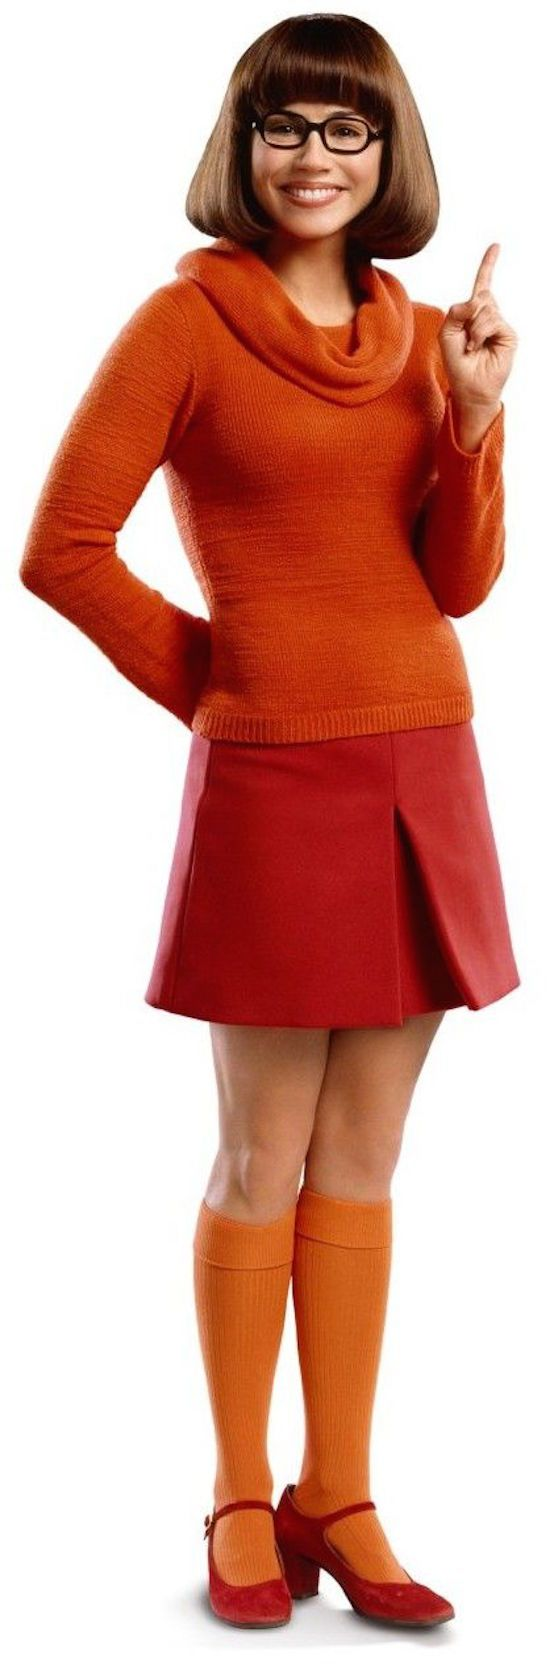 13 best daphne from Scooby doo - 81.5KB